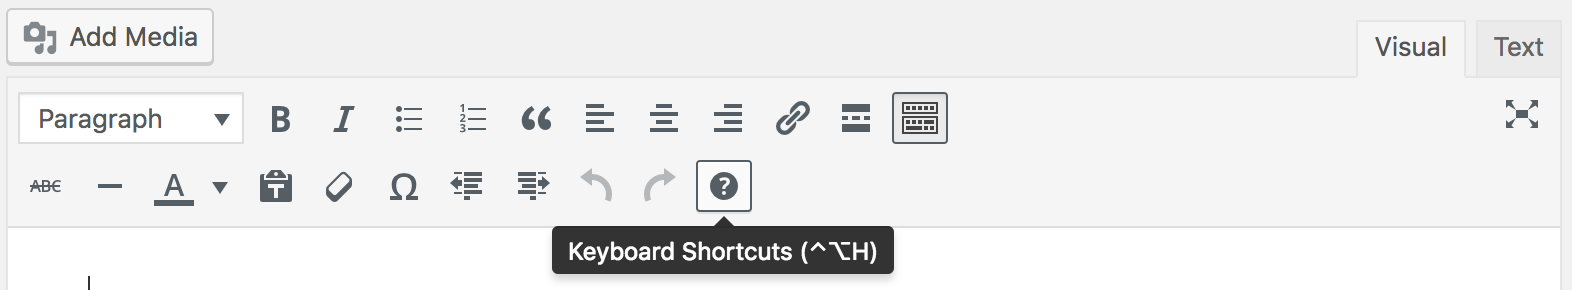 Keyboard Shortcuts button